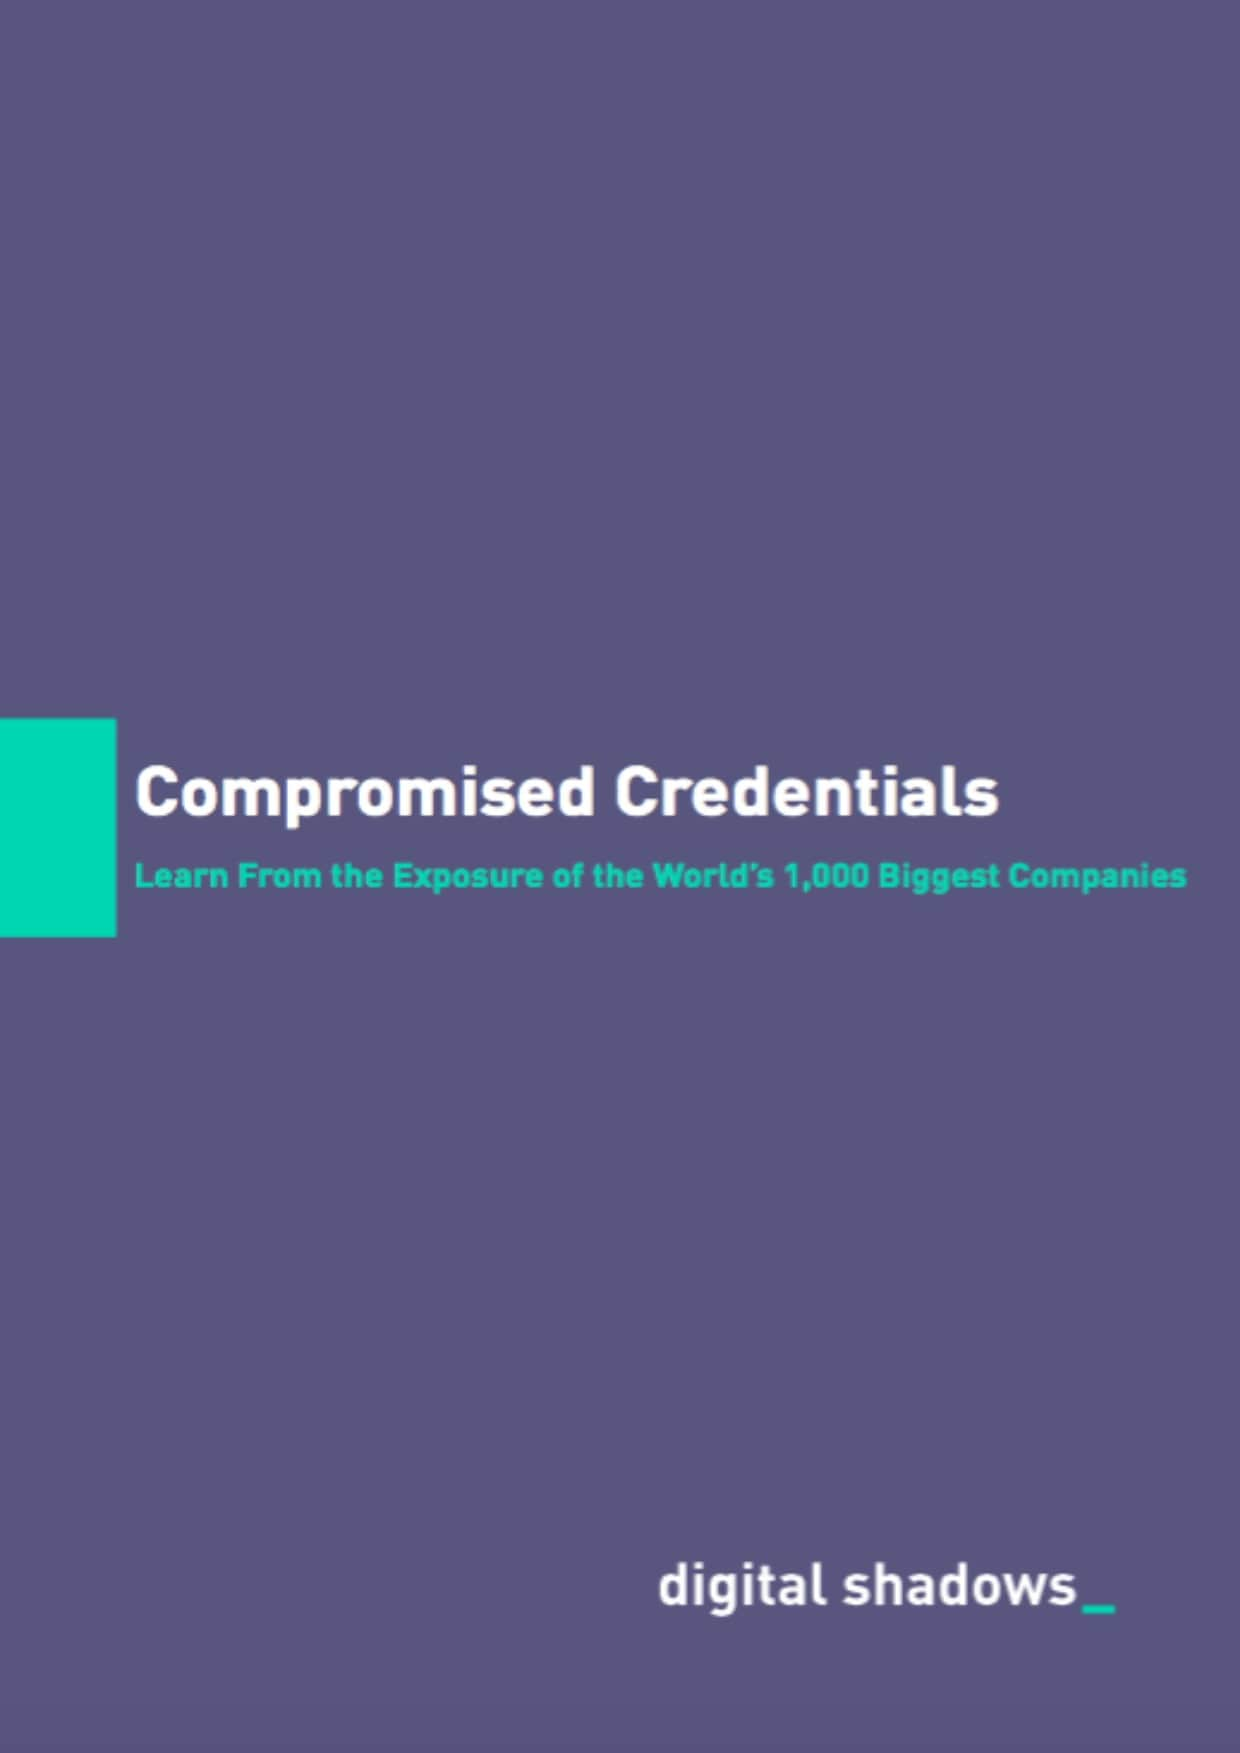 Compromised Credentials cover image min min